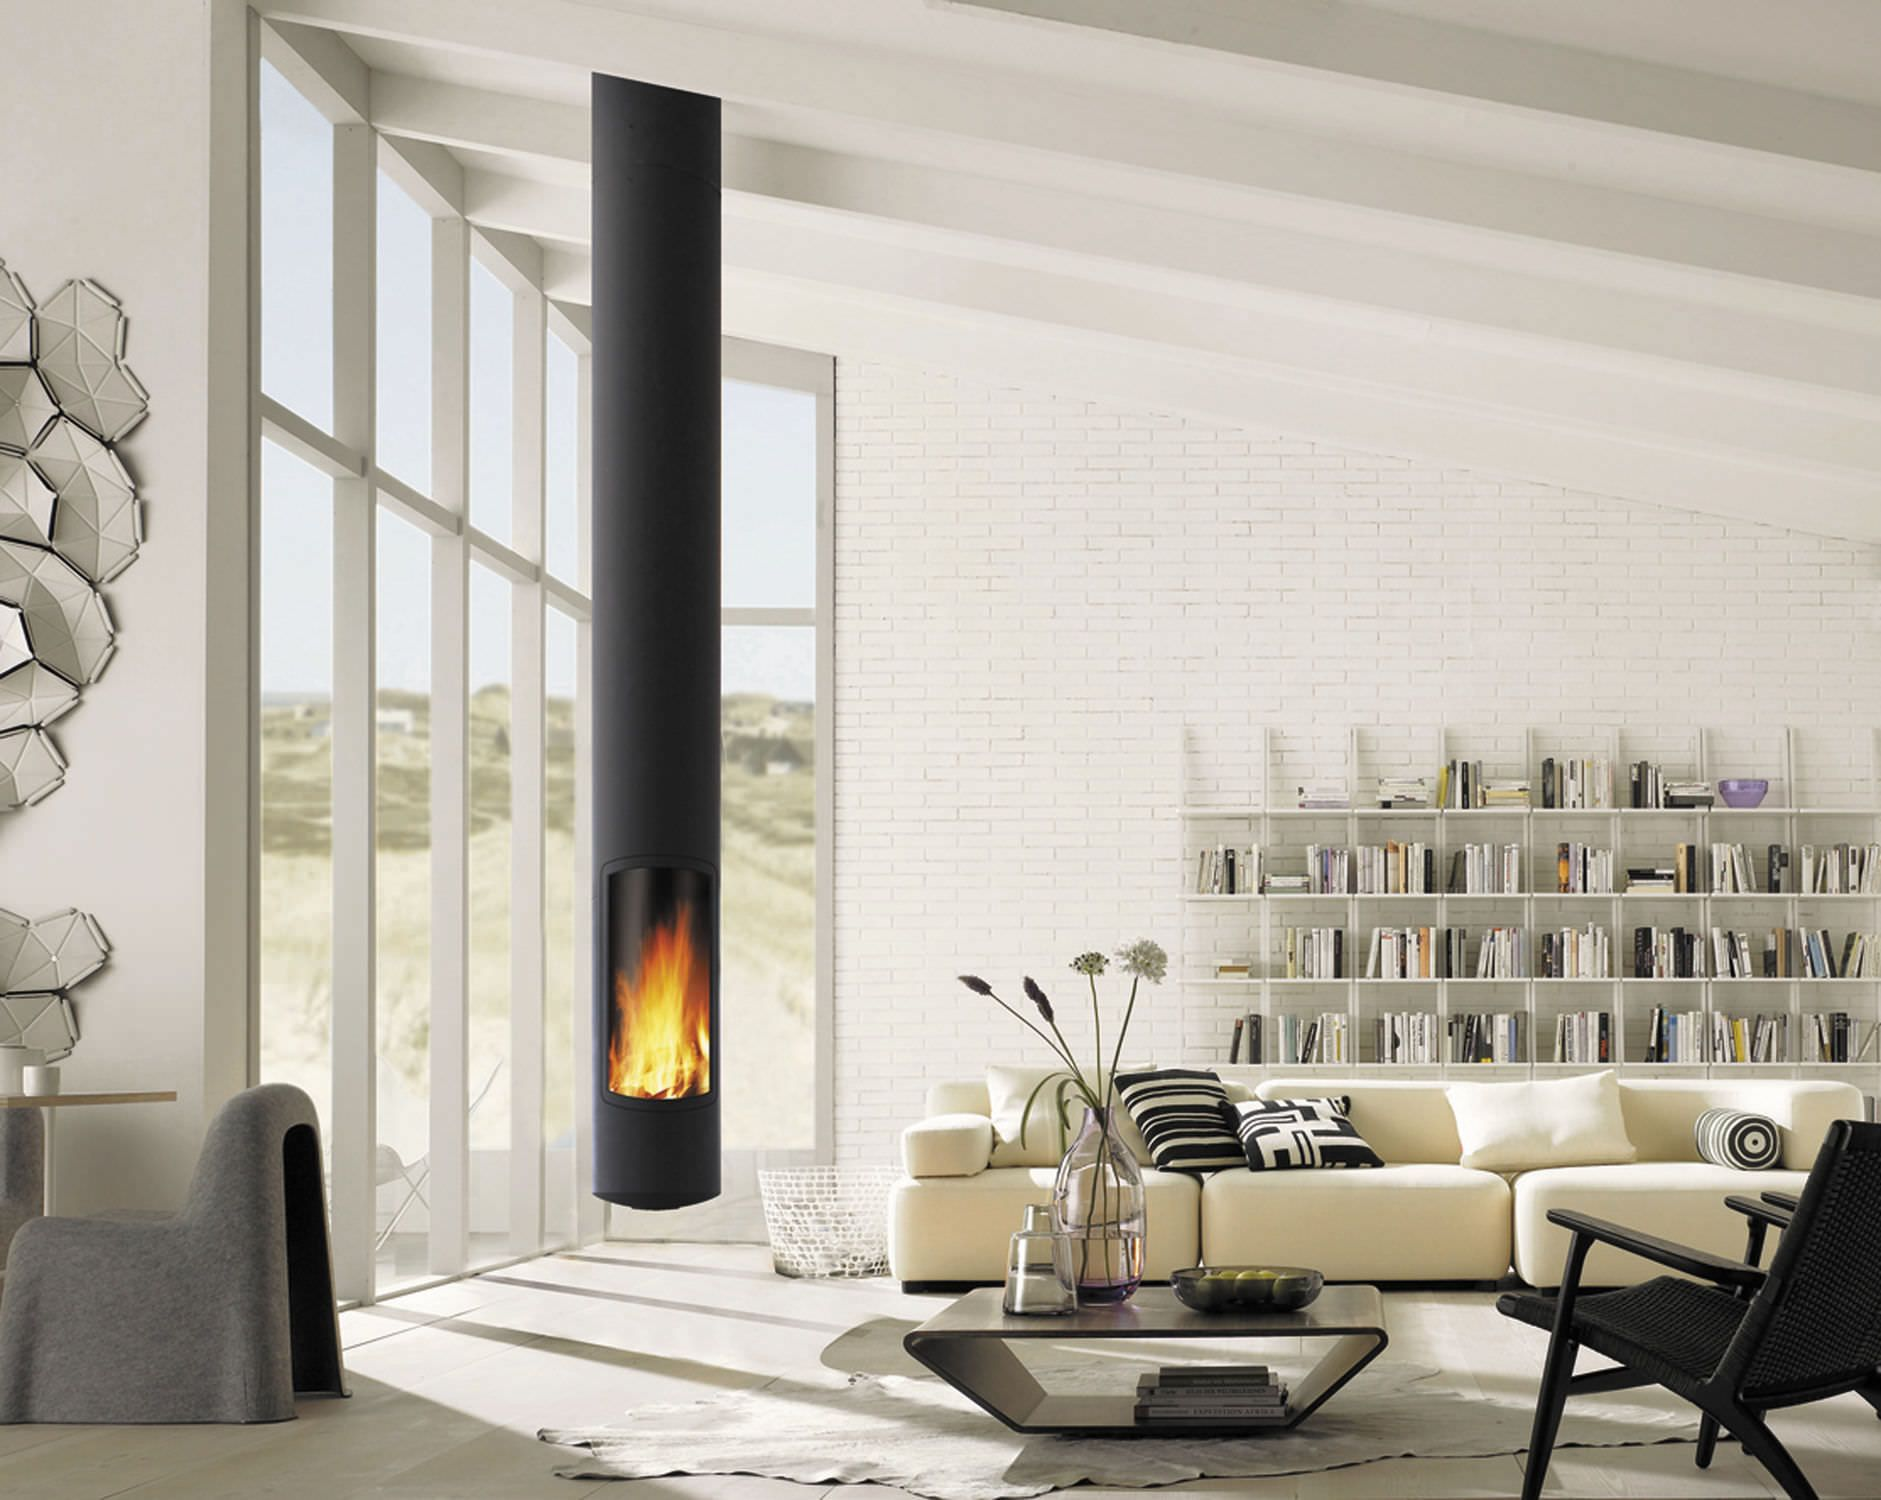 contemporary hanging fireplace central hearth closed focus burning wood product prod